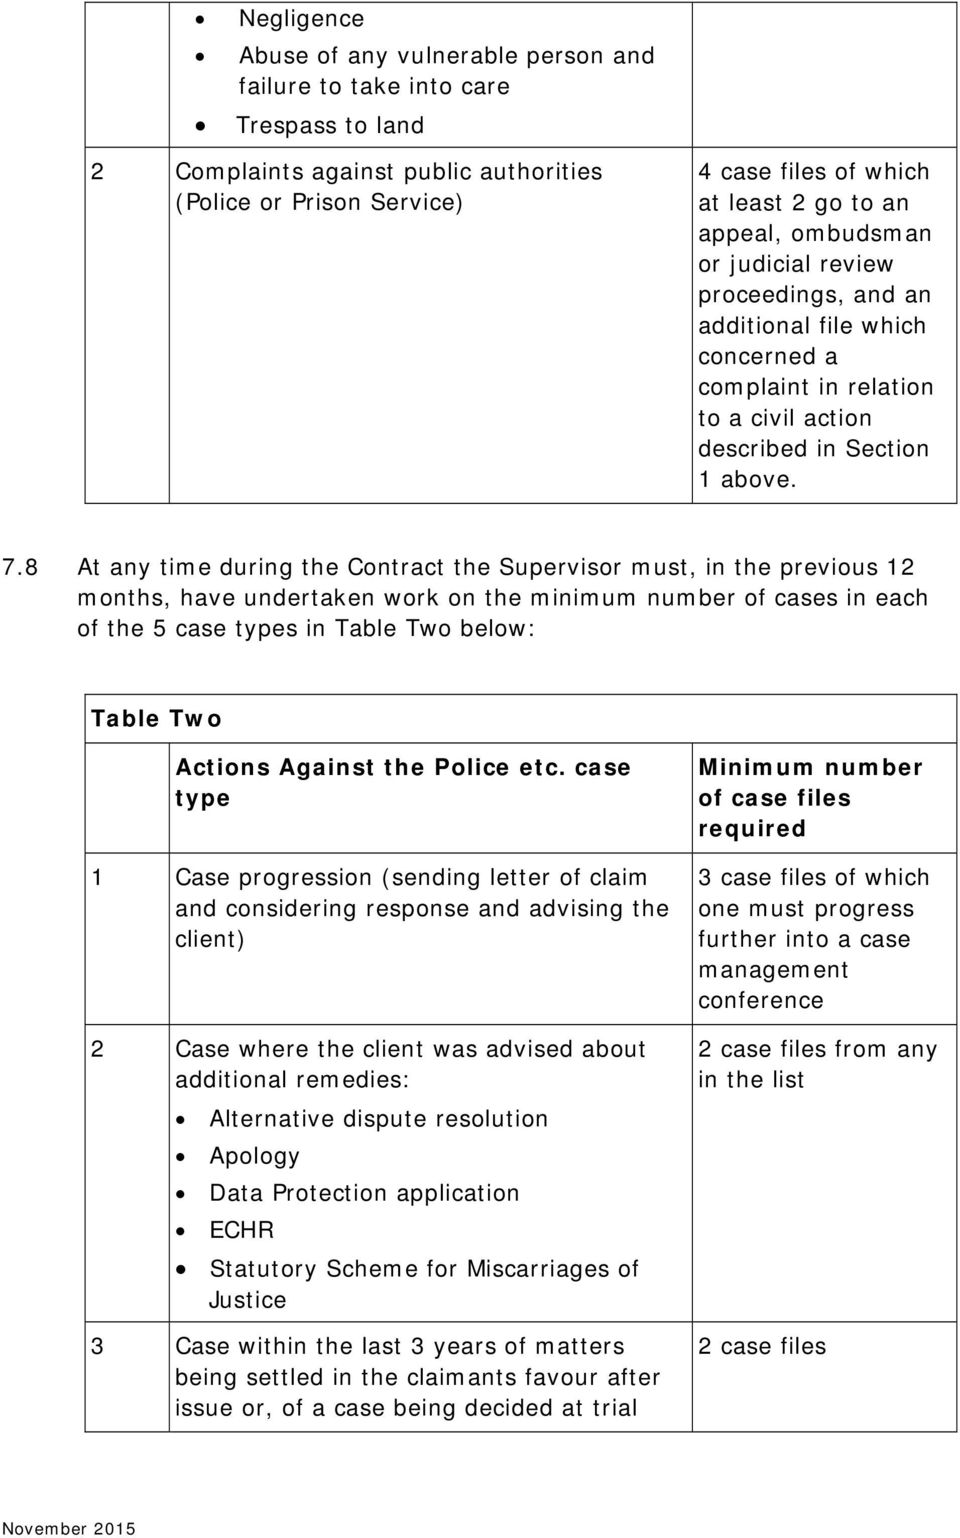 8 At any time during the Contract the Supervisor must, in the previous 12 months, have undertaken work on the minimum number of cases in each of the 5 case types in Table Two below: Table Two Actions